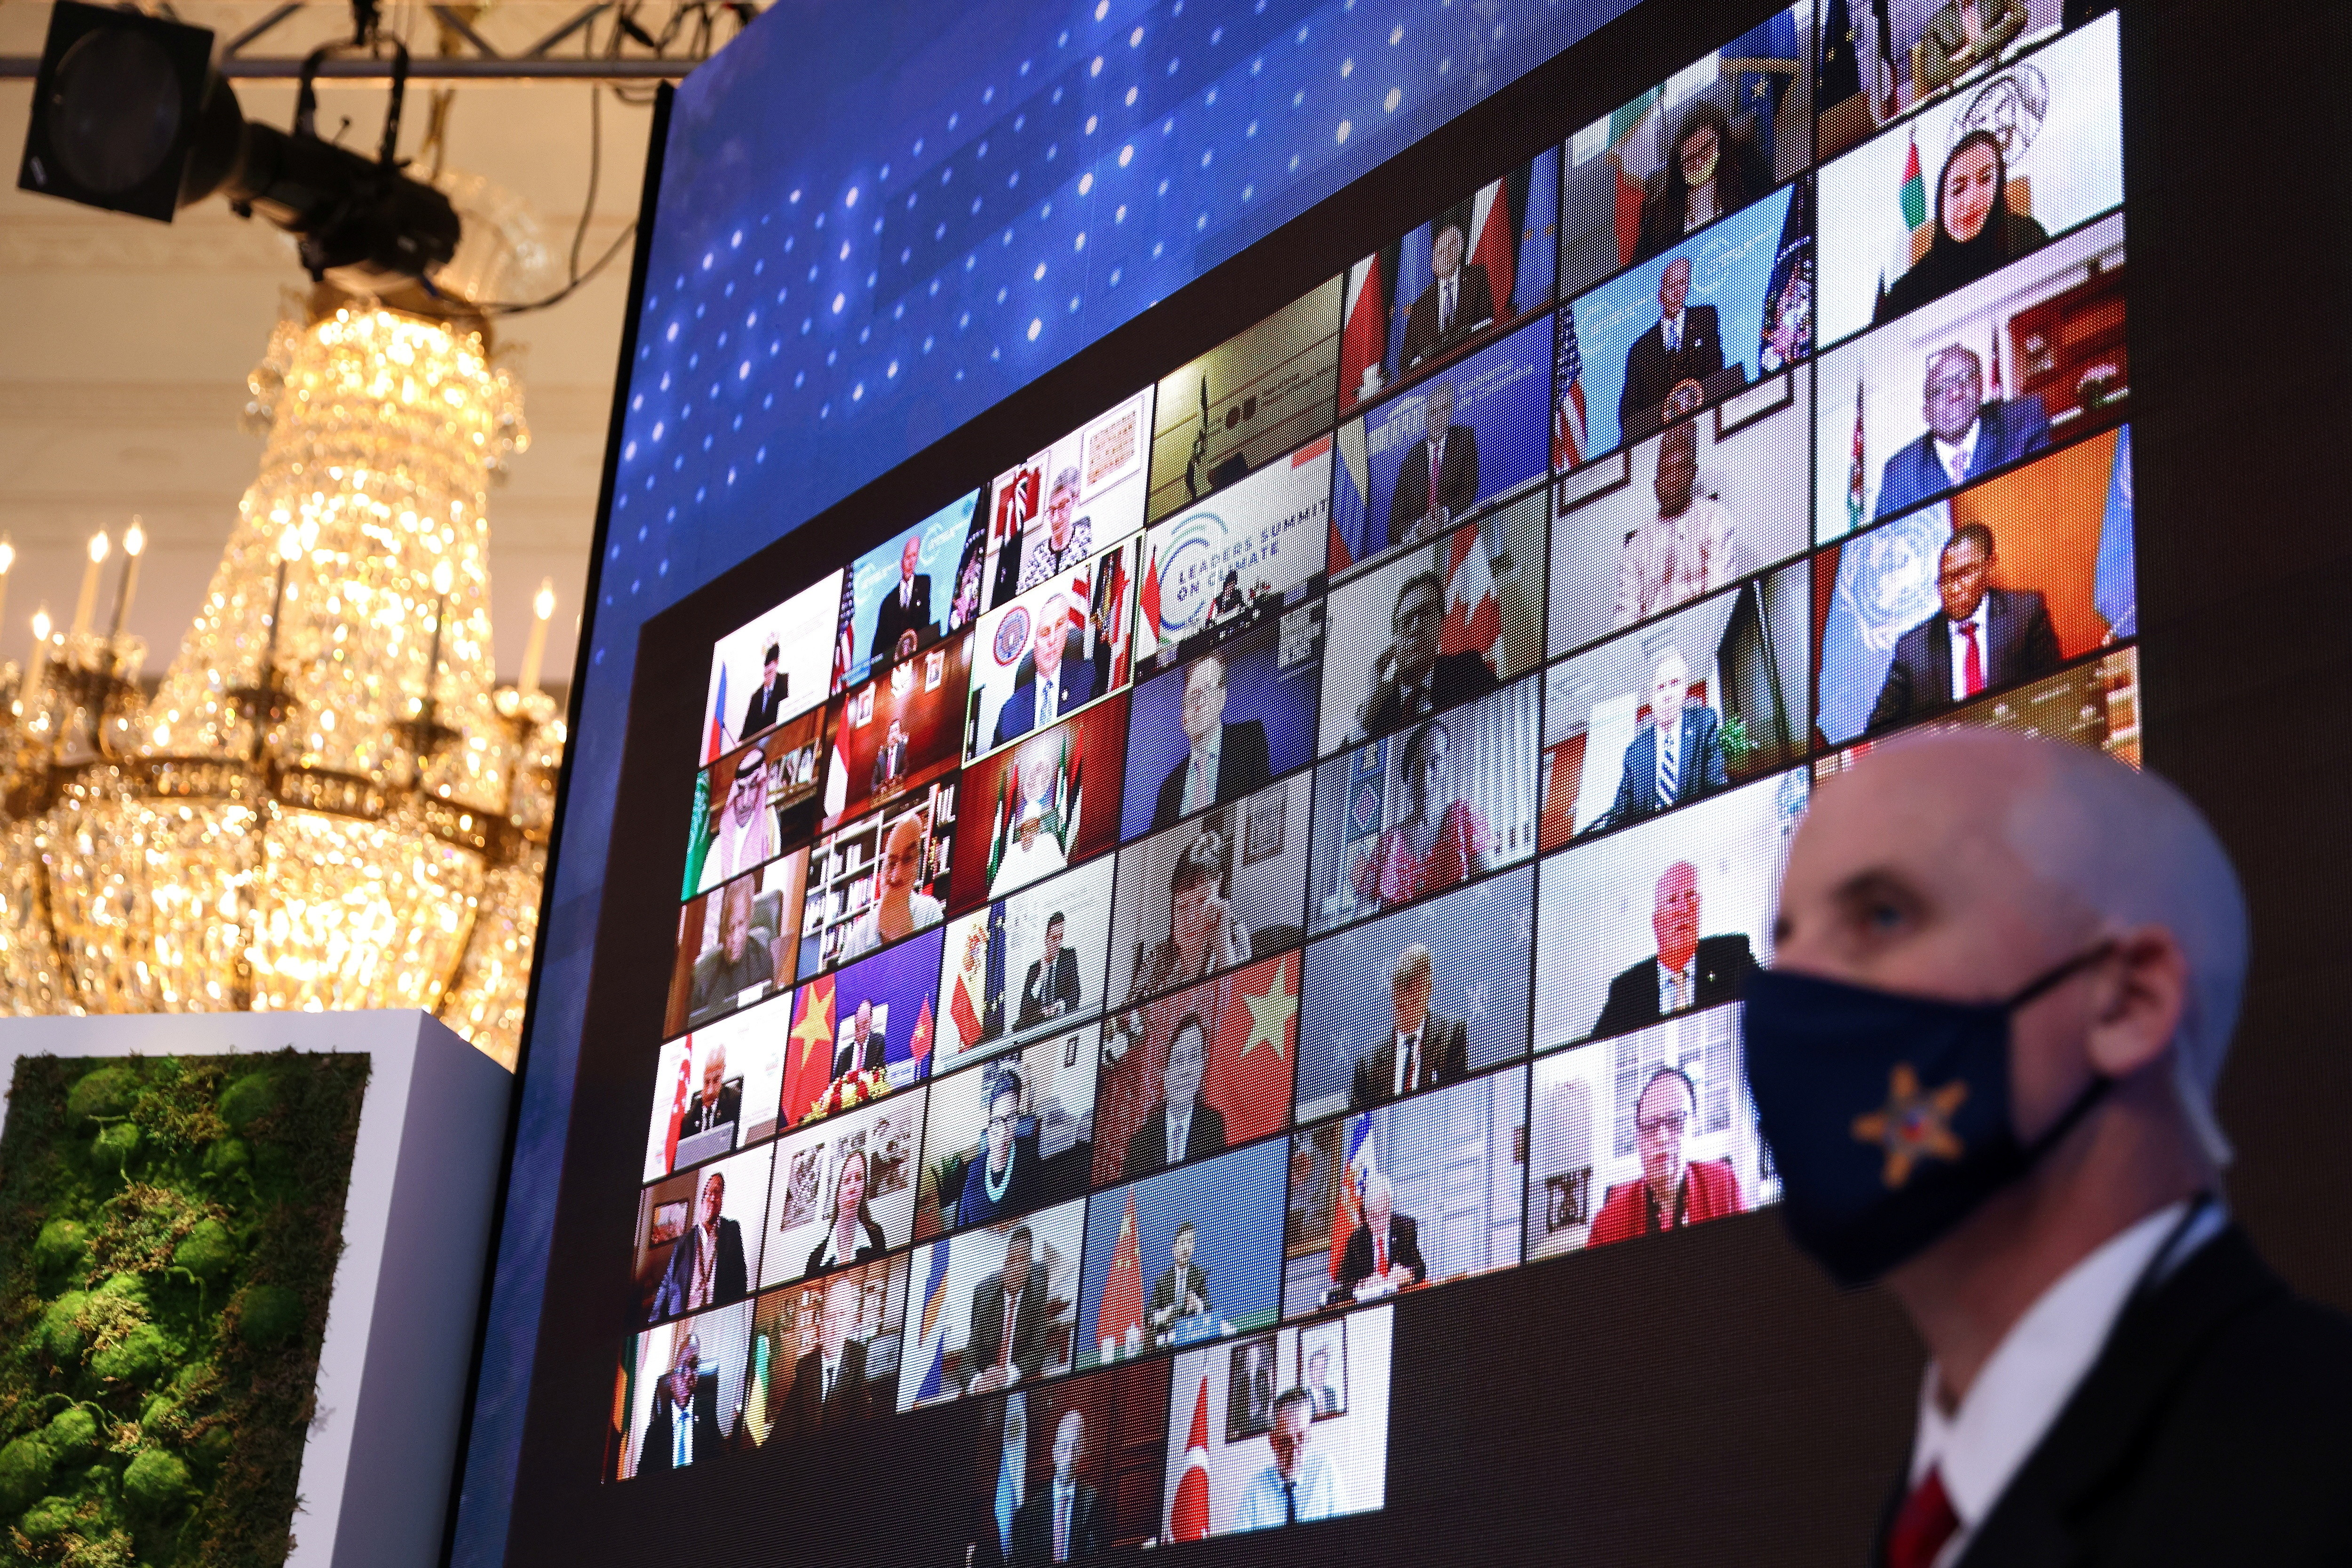 World leaders appear on a video screen during a virtual Climate Summit with world leaders in the East Room at the White House in Washington, U.S., April 23, 2021.